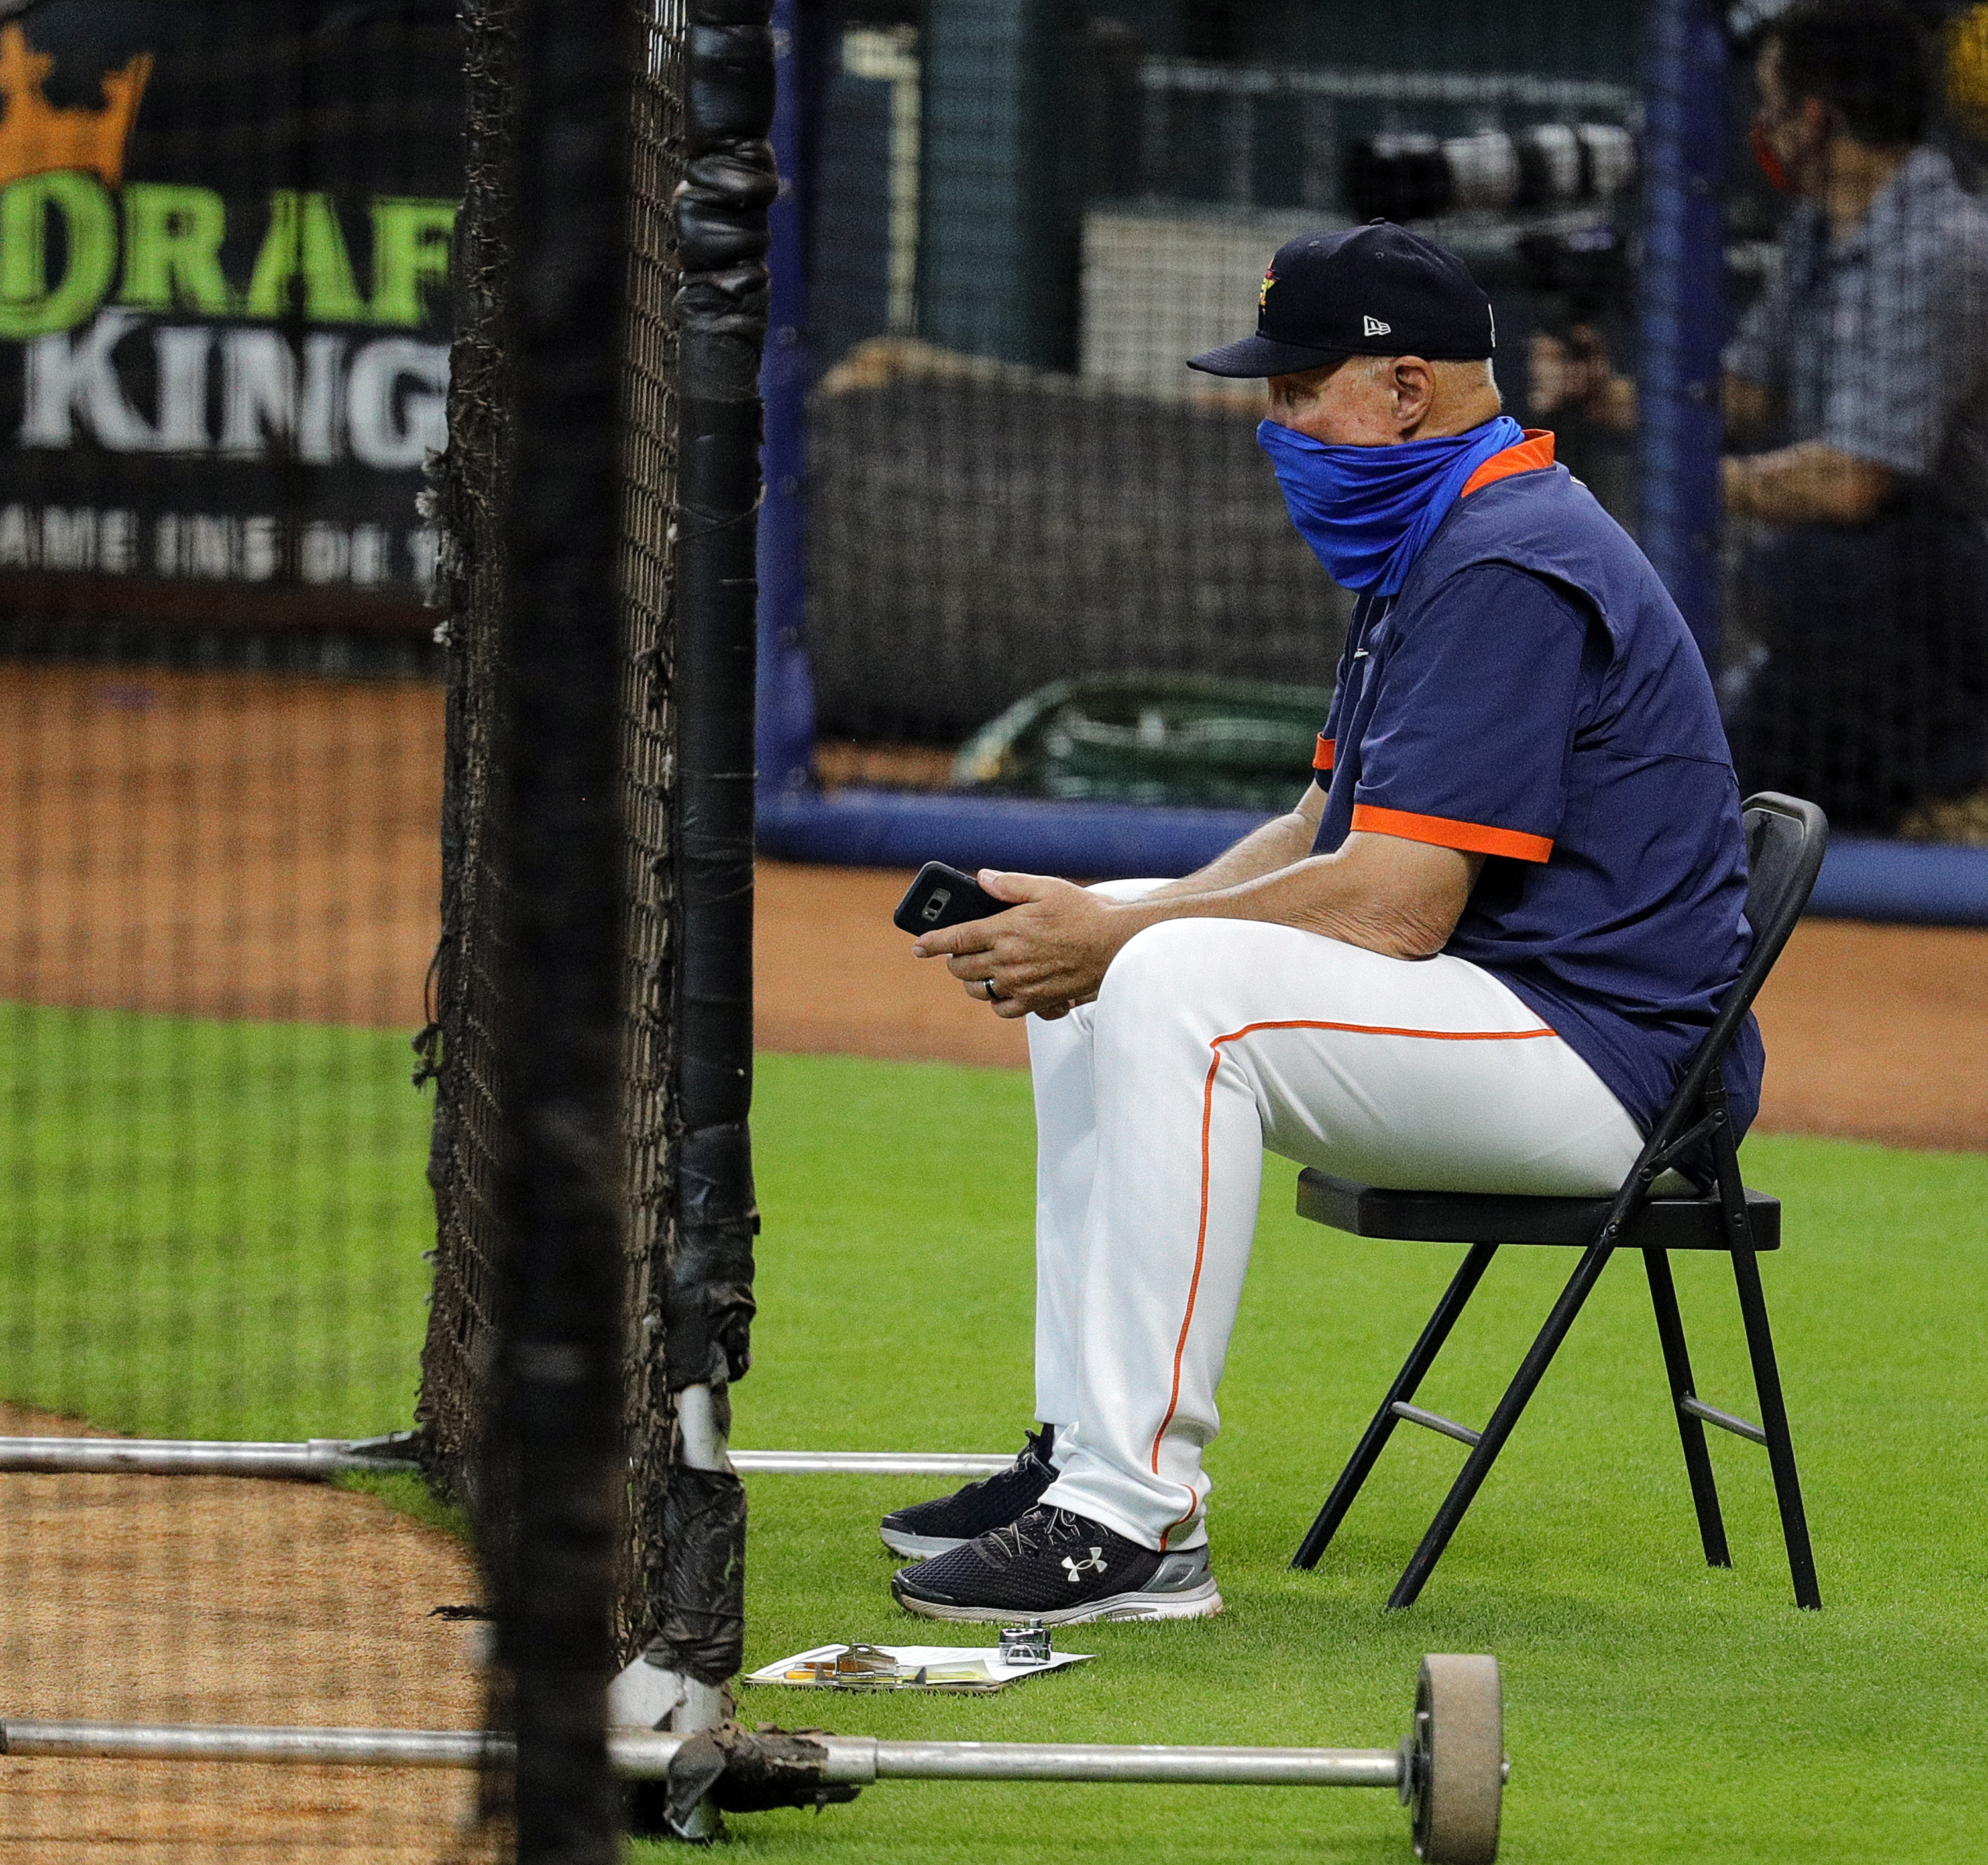 Brent Strom, Astro Pitching Coach